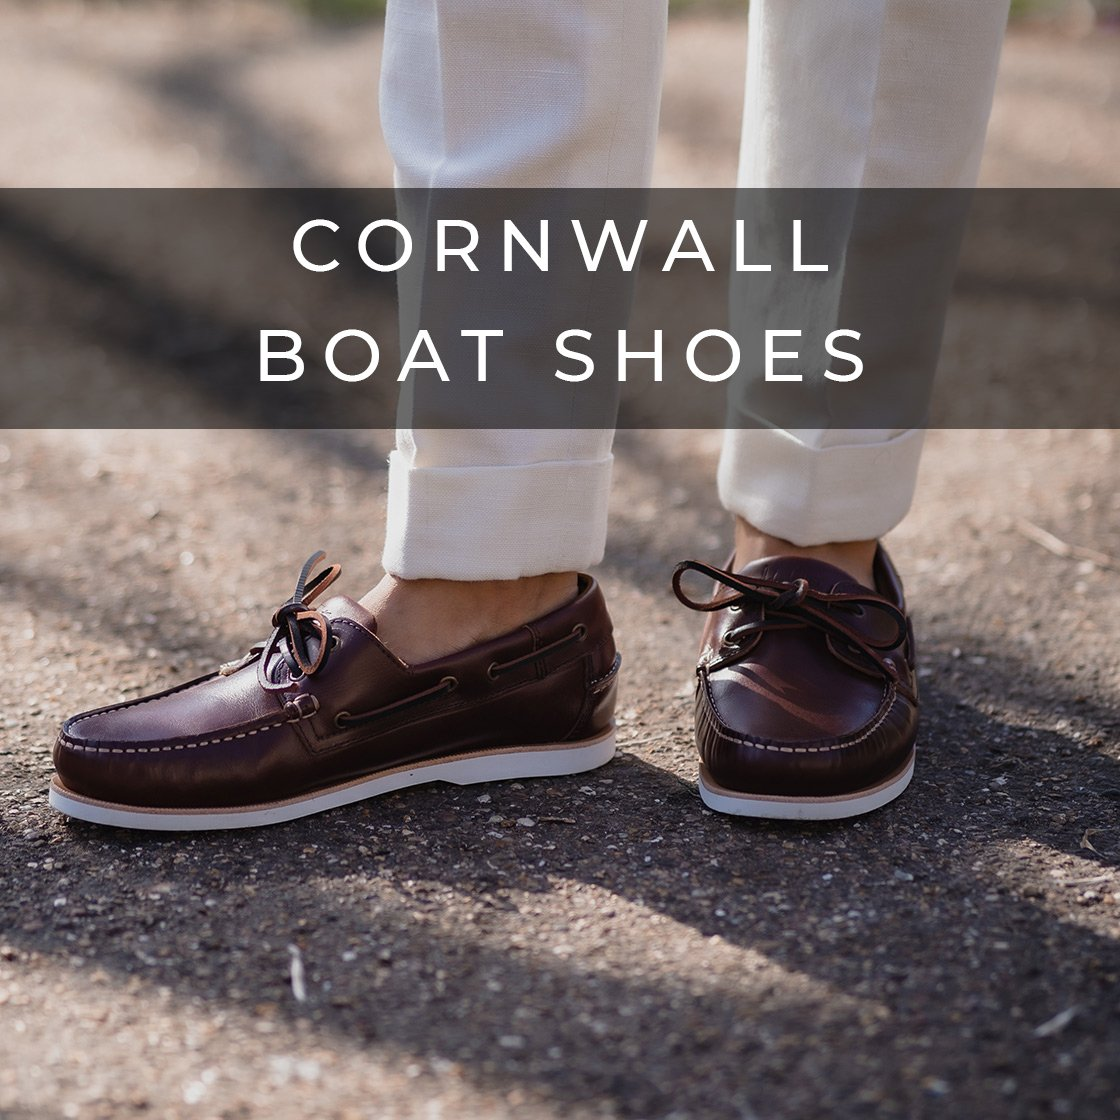 Cornwall Boat Shoes